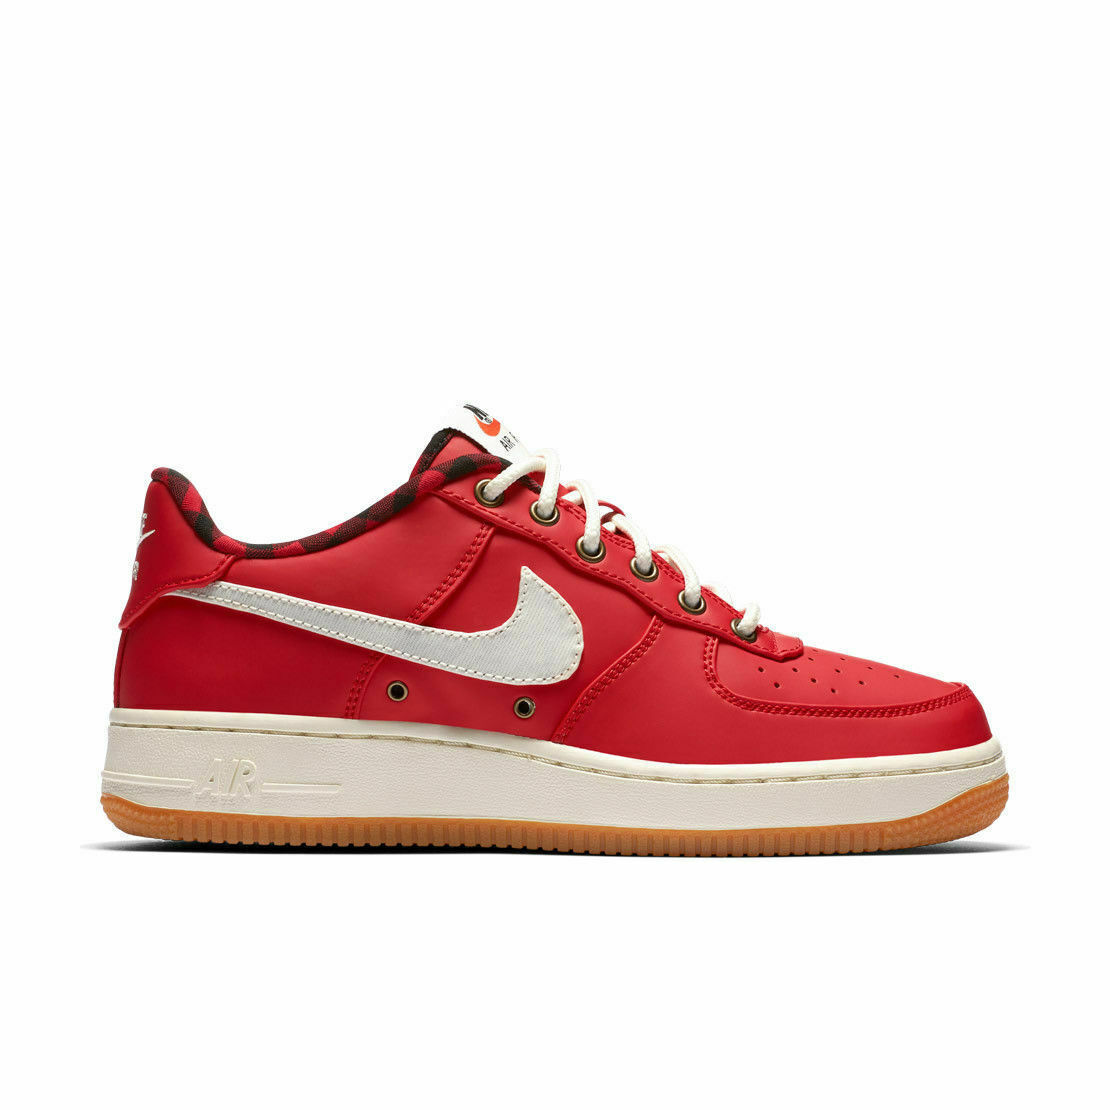 premium selection 21041 dcfb5 NIKE AIR FORCE 1 LV8 GS SHOES SIZE 6.5Y red sail cobalt 820438 601 -  55.14